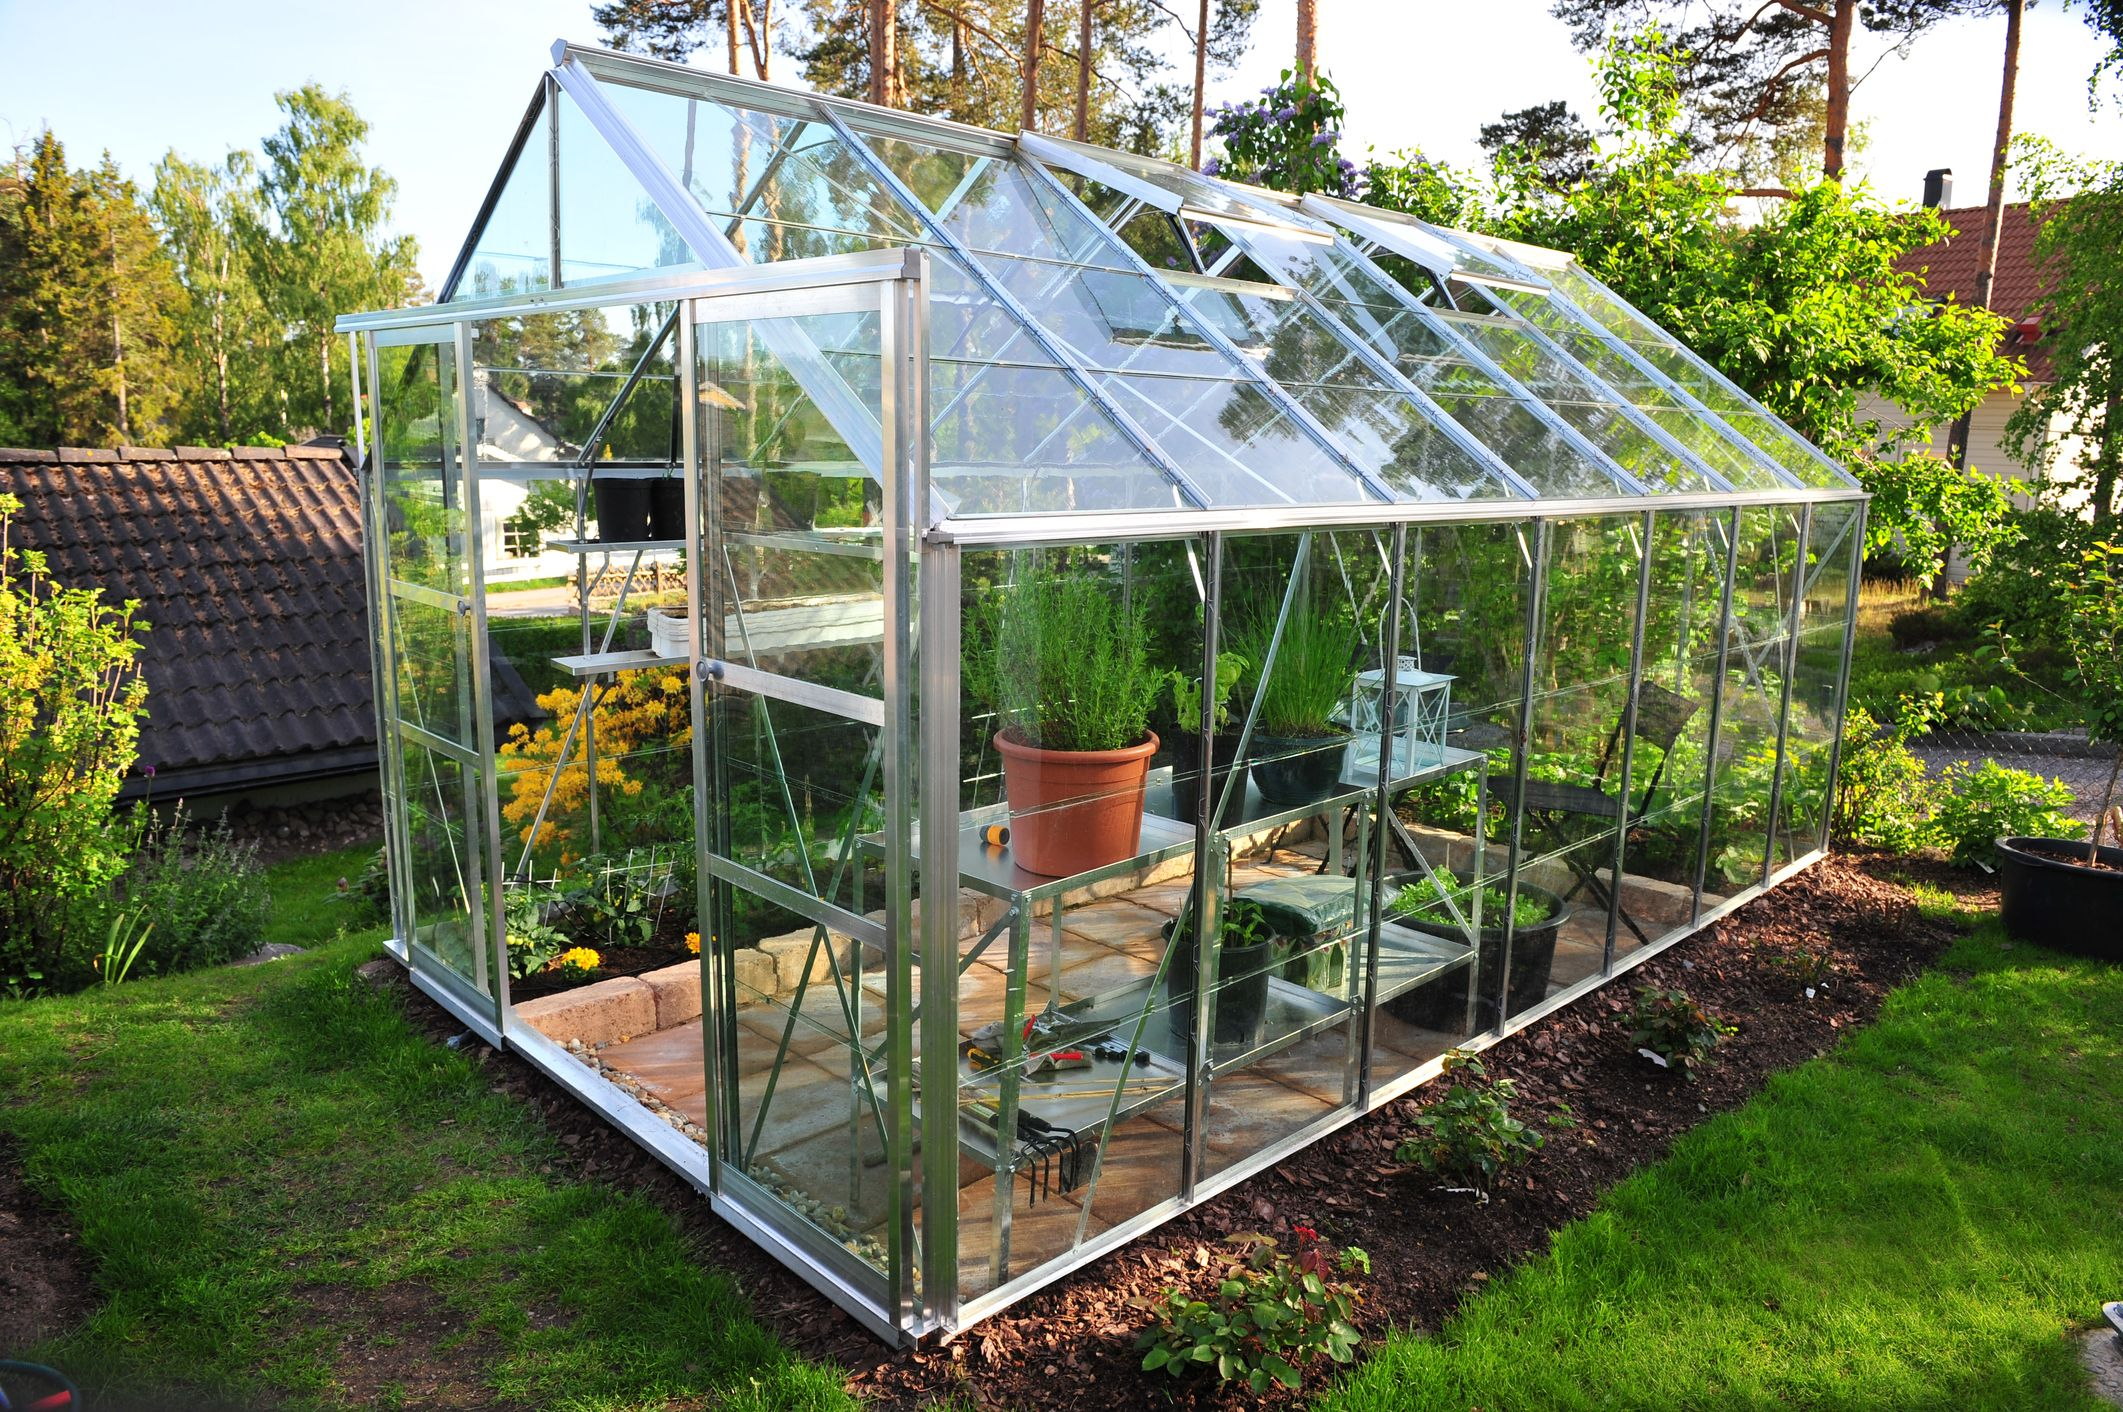 Buy Greenhouse For Your Garden Now At Https Www Wholesalesdirect Com Au Green House 2 Buy Greenhouse Build A Greenhouse Backyard Greenhouse Backyard greenhouse kits for sale